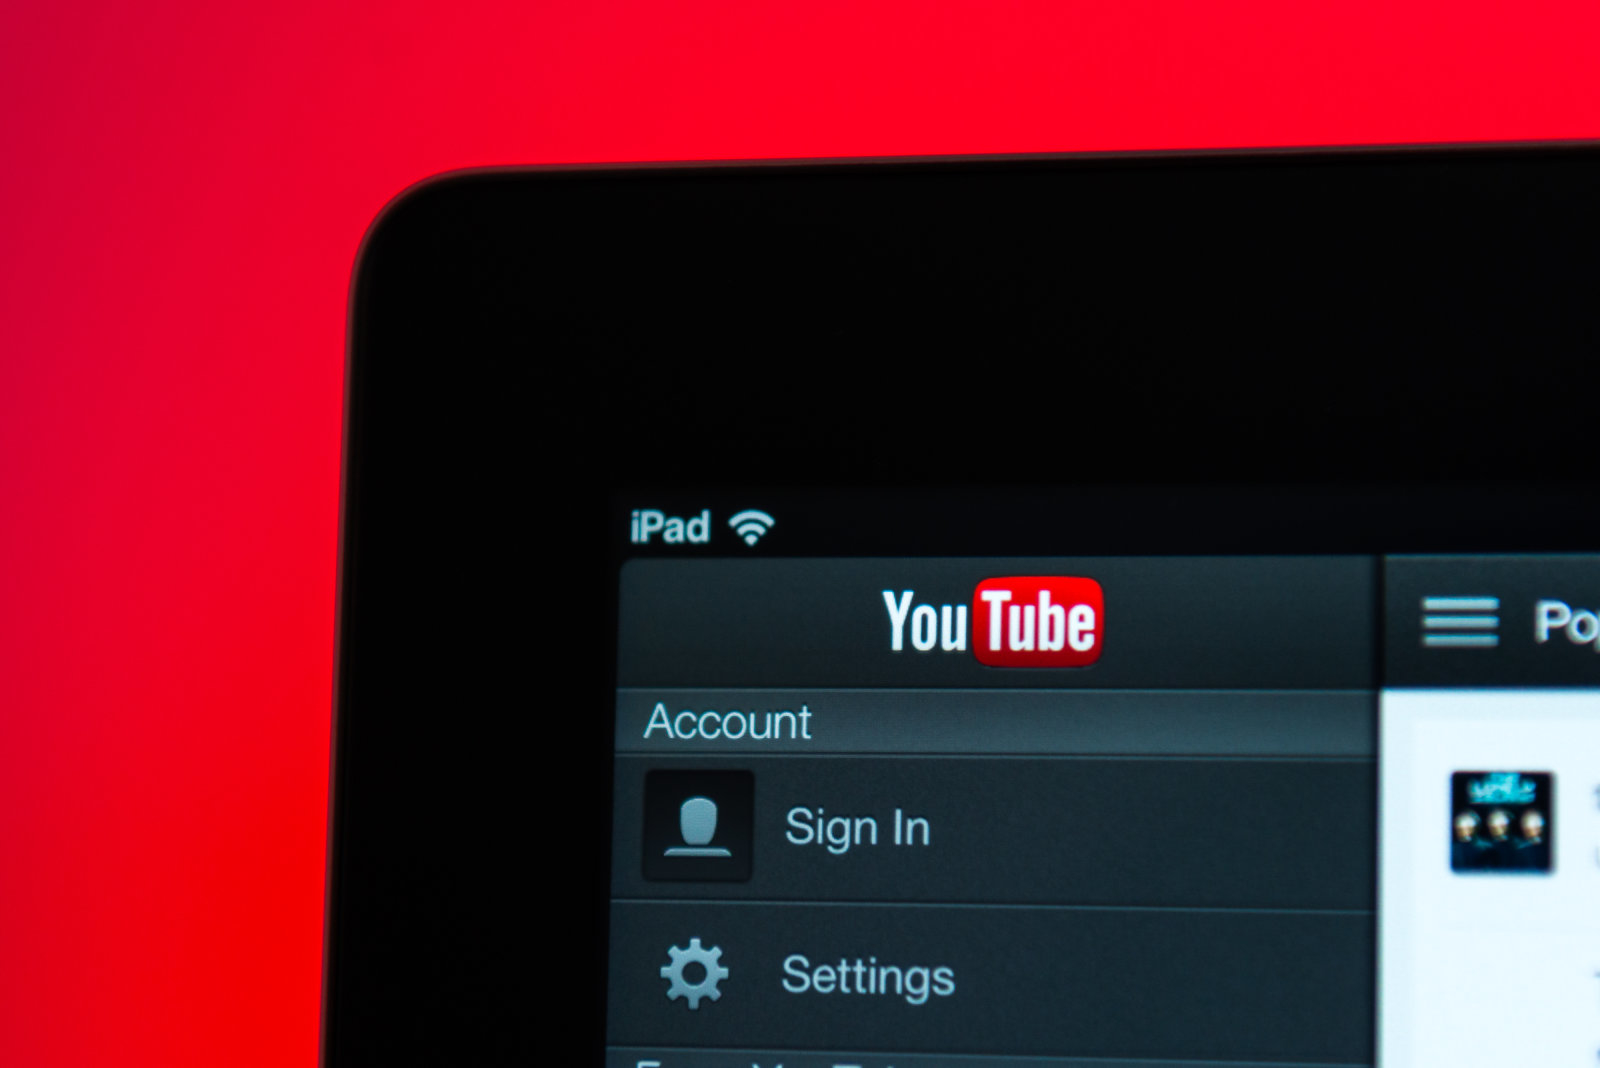 Ankara, Turkey - May 23, 2013:  Close up view of the YouTube home screen.The iPad is produced by Apple Computer, Inc.